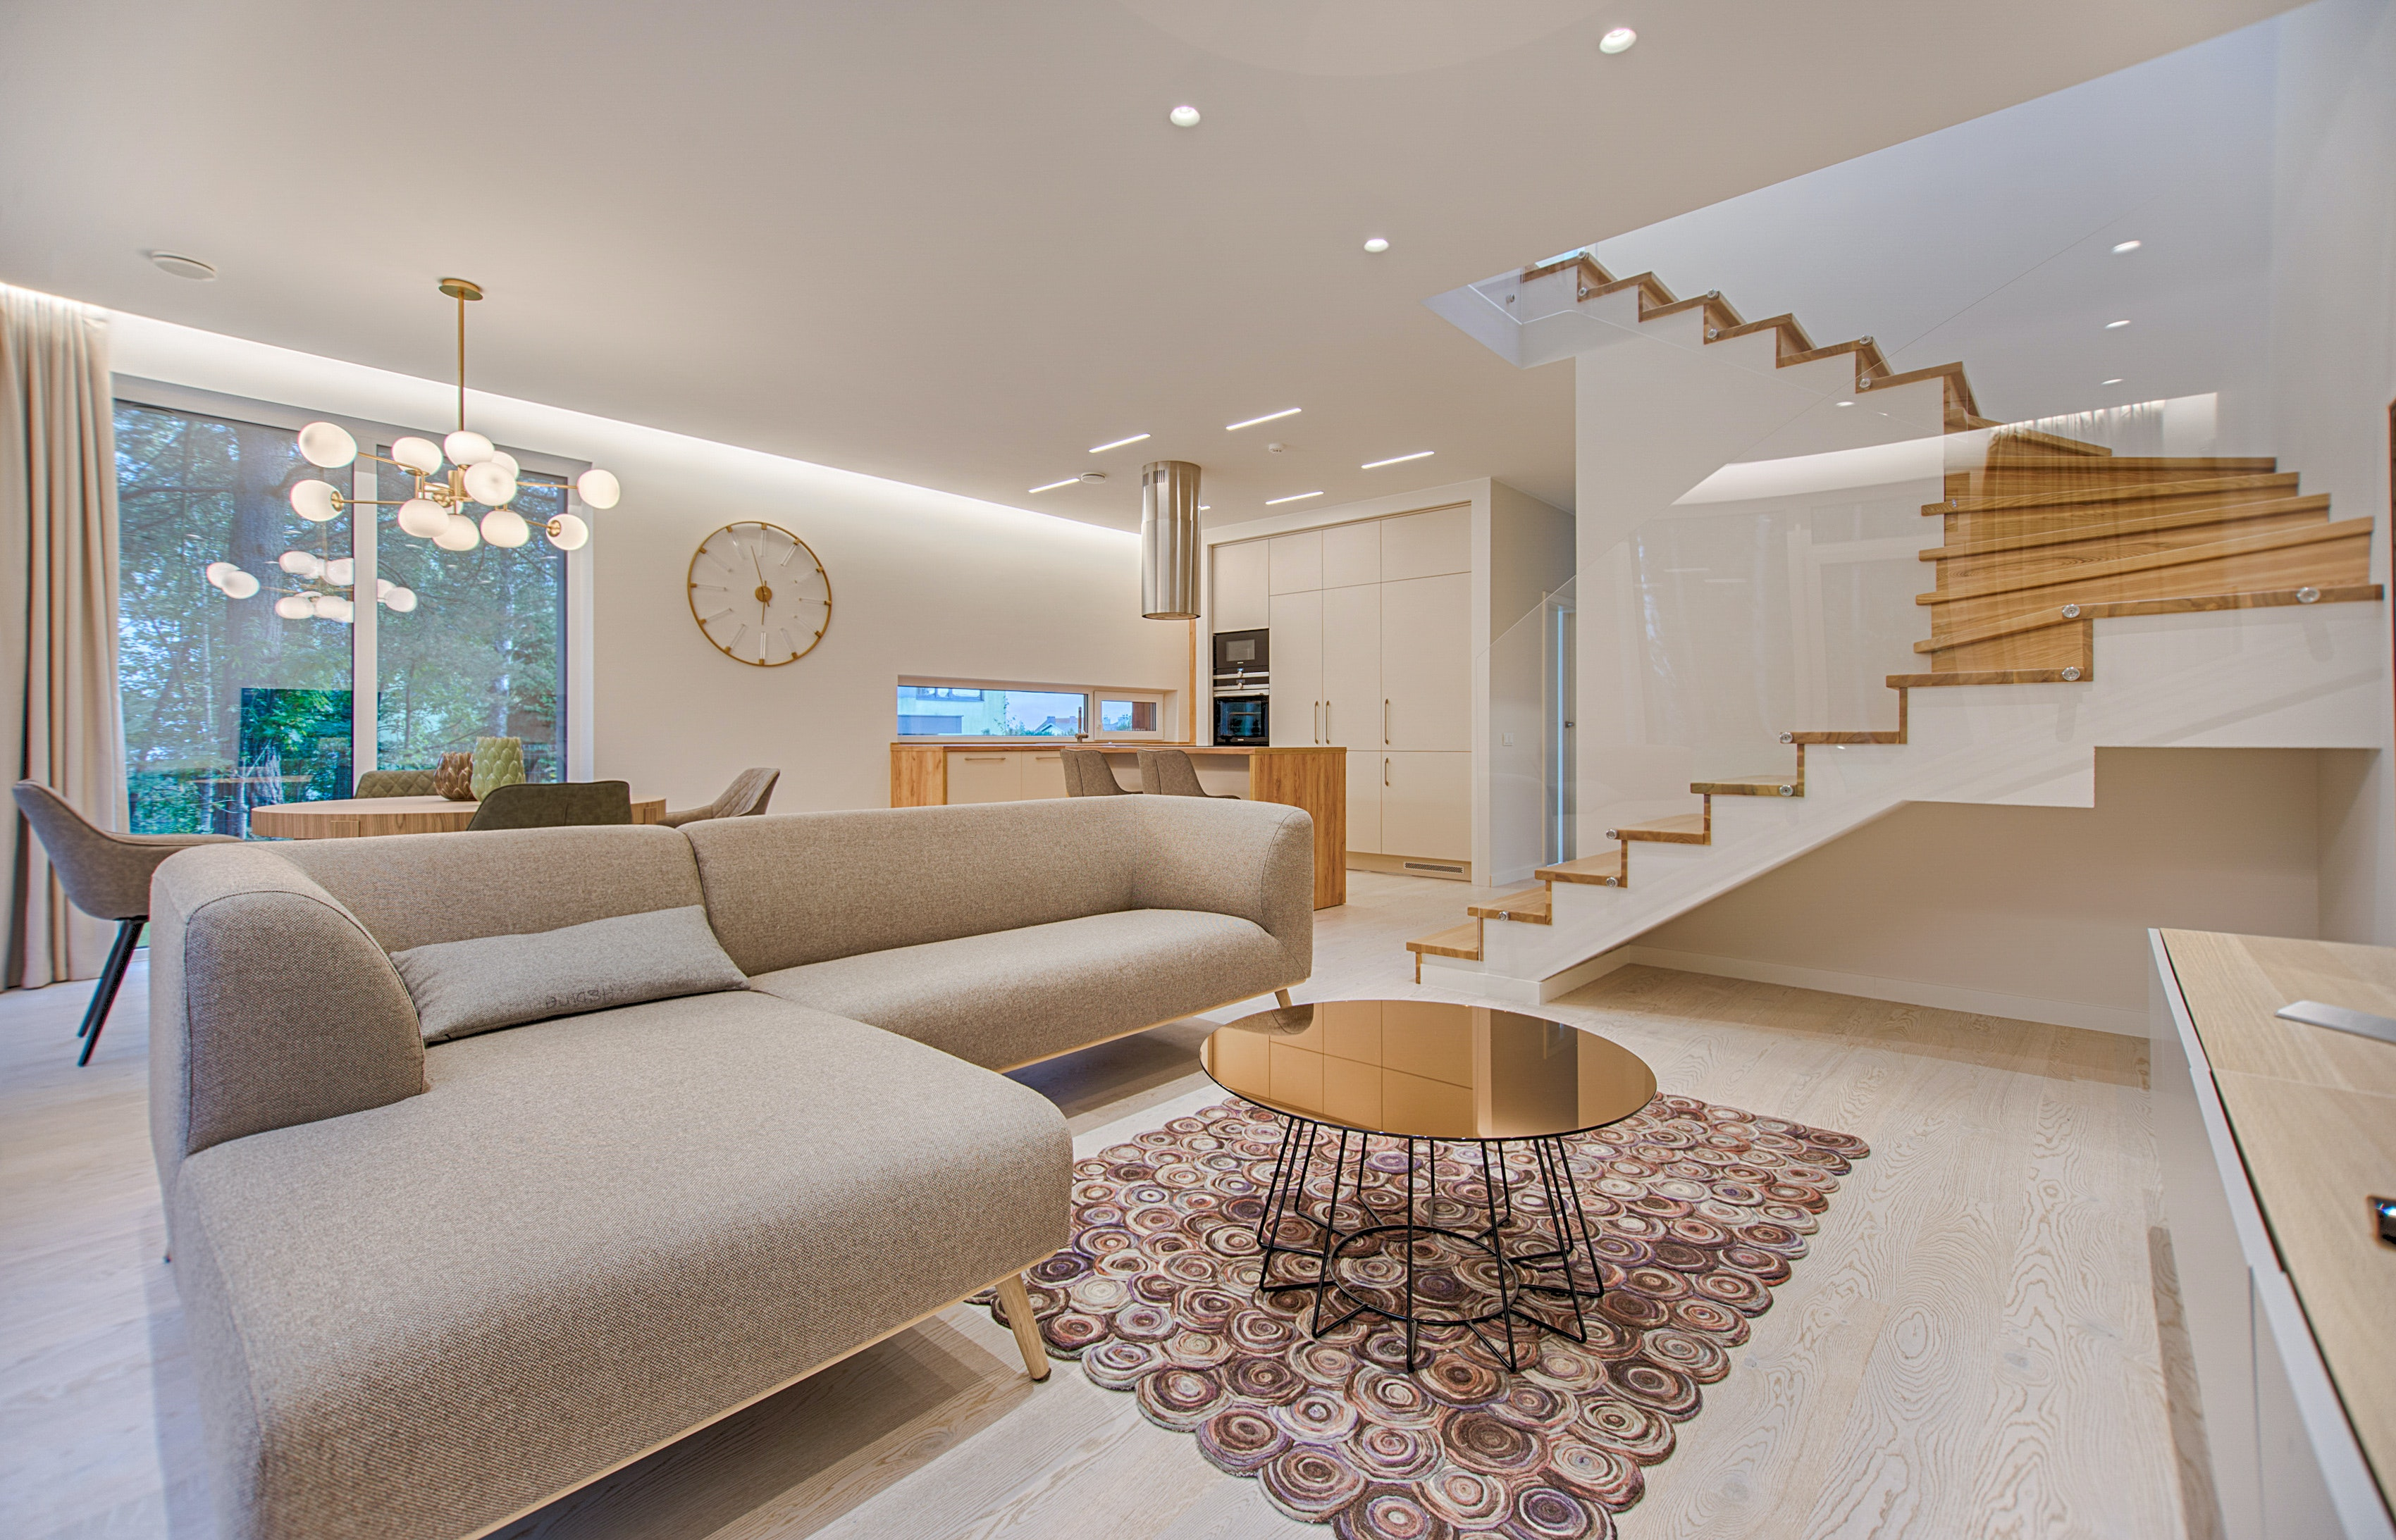 Top 4 Interesting Interior Design Styles For Your New Apartment In 2020